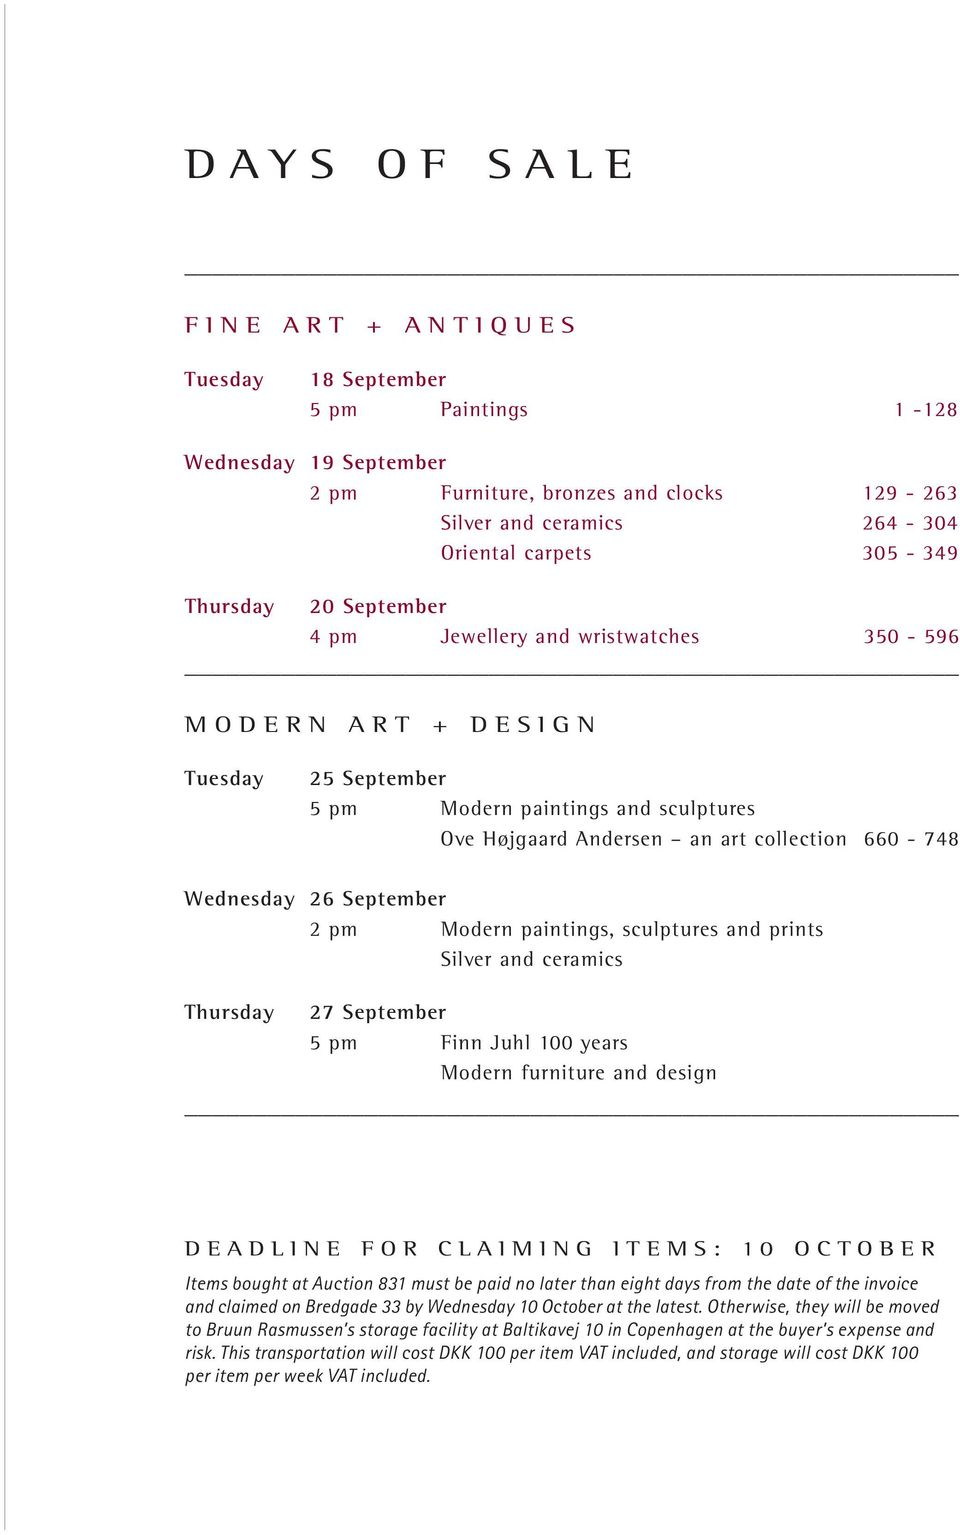 Wednesday 26 September 2 pm Modern paintings, sculptures and prints Silver and ceramics Thursday 27 September 5 pm Finn Juhl 100 years Modern furniture and design D ead line F or C laim ing it e MS: